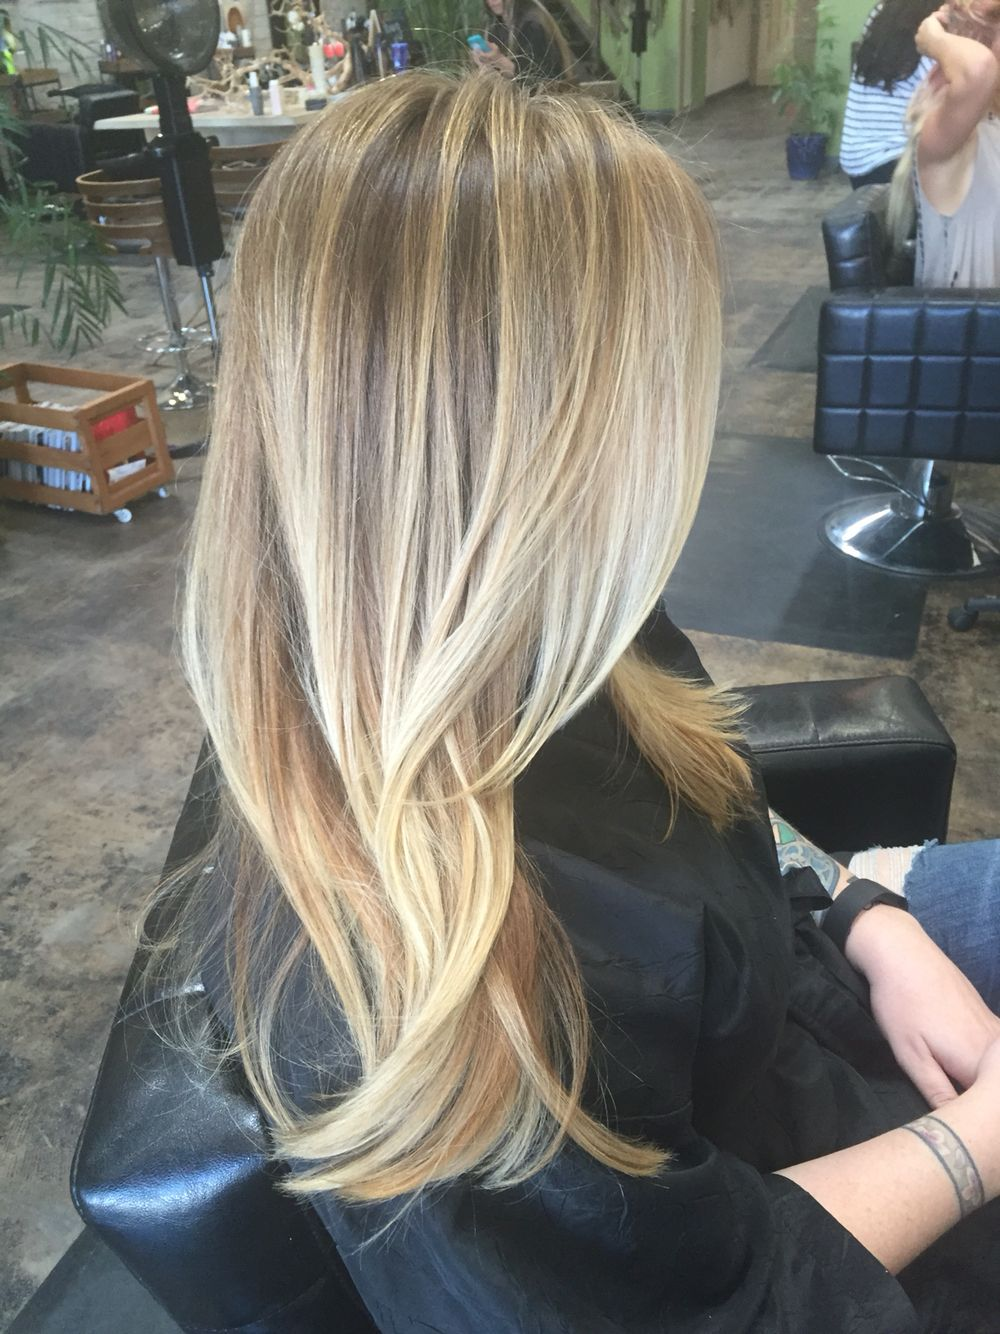 kat brackenberry at the lighthouse salon in san diego is the best! i